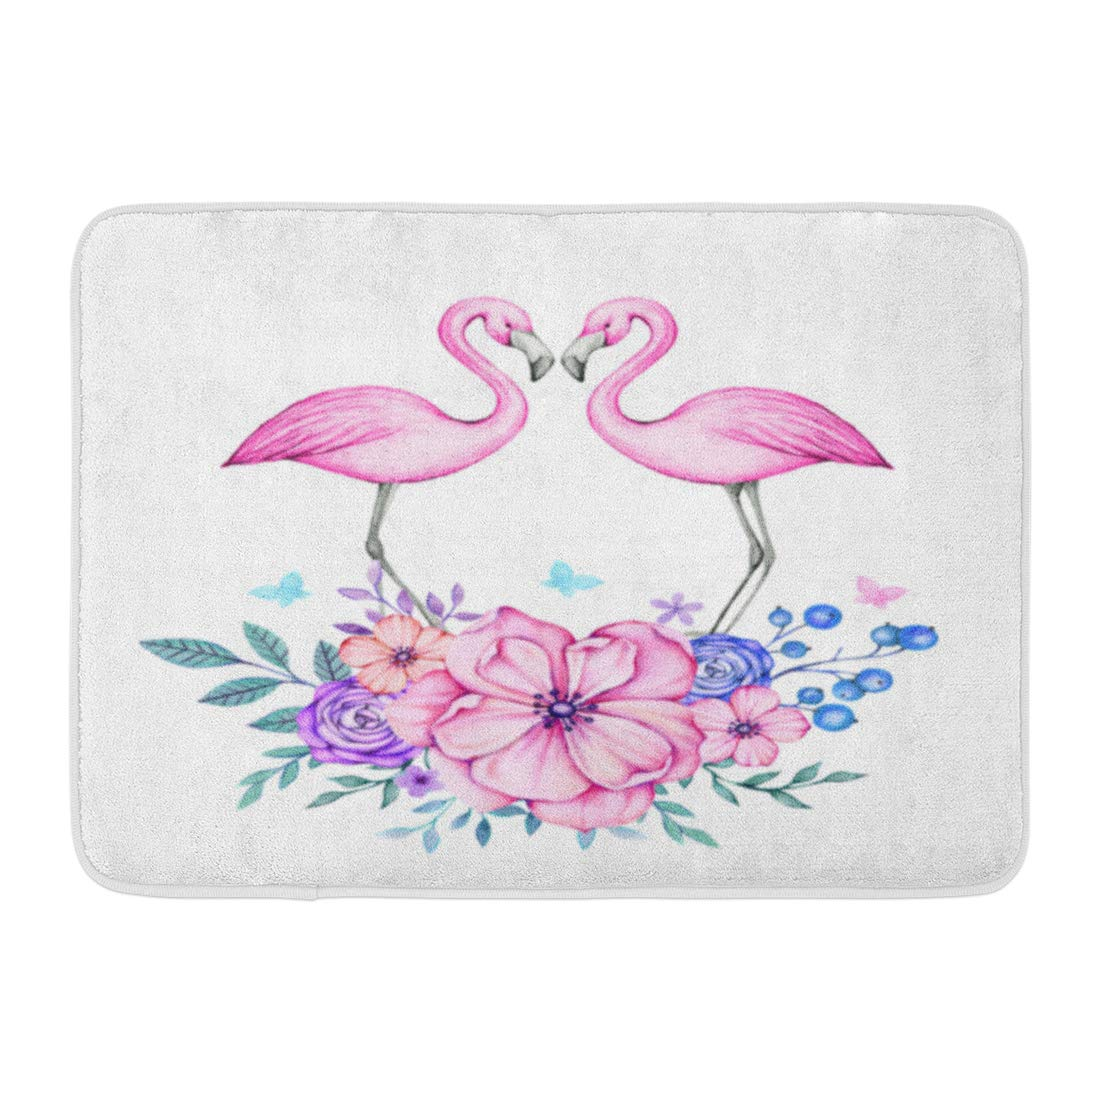 Baby Pink Bathroom Rugs: GODPOK Baby Pink Bird Lovely And Romantic Watercolor With